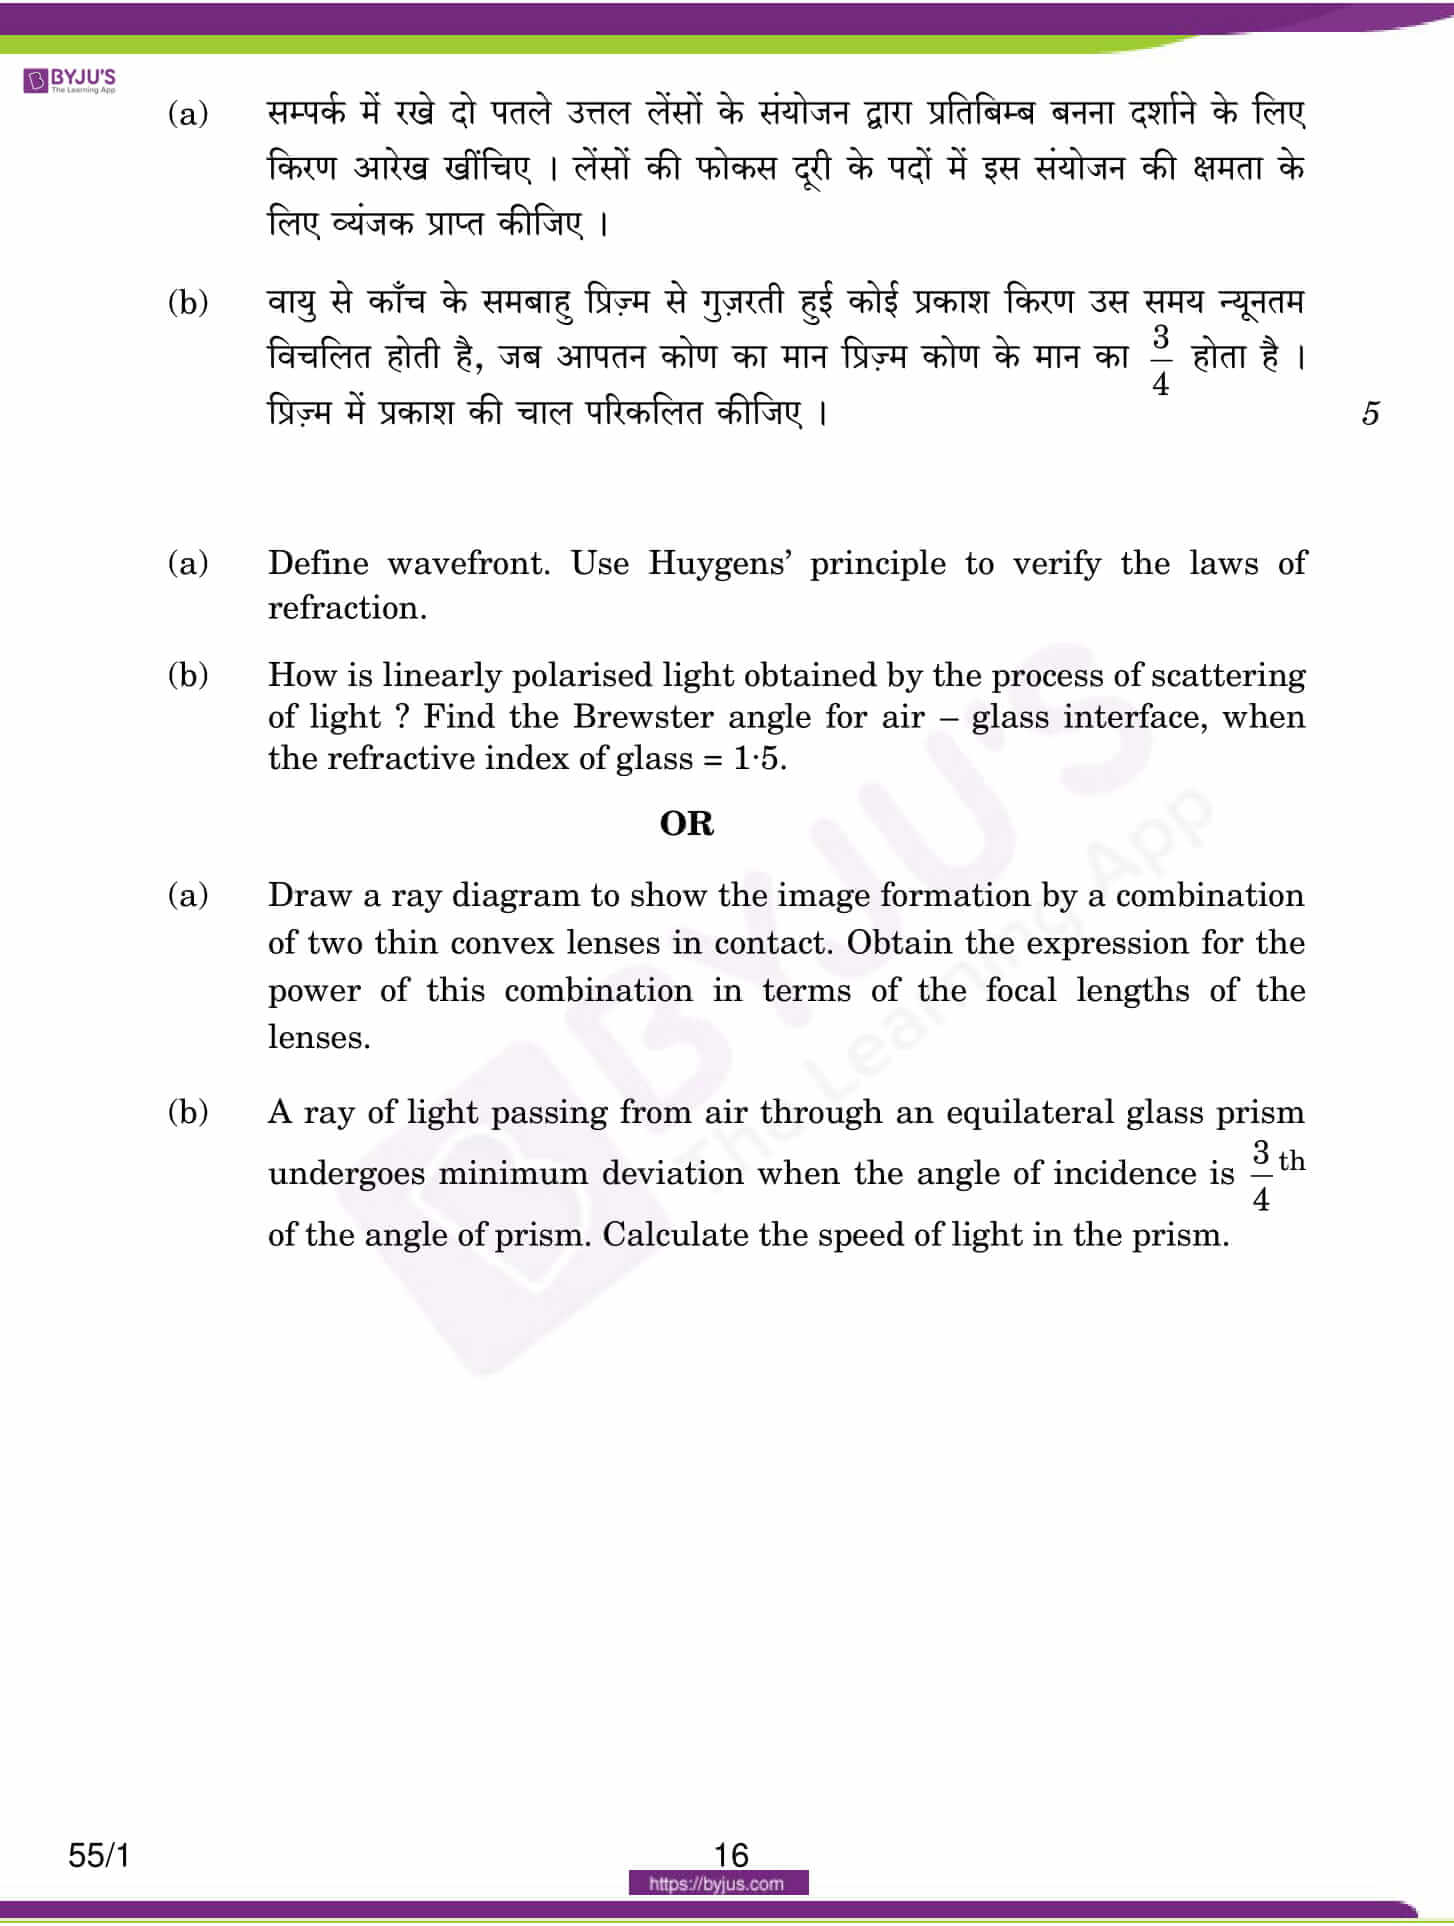 cbse class 12 phy 2017 question paper set 1